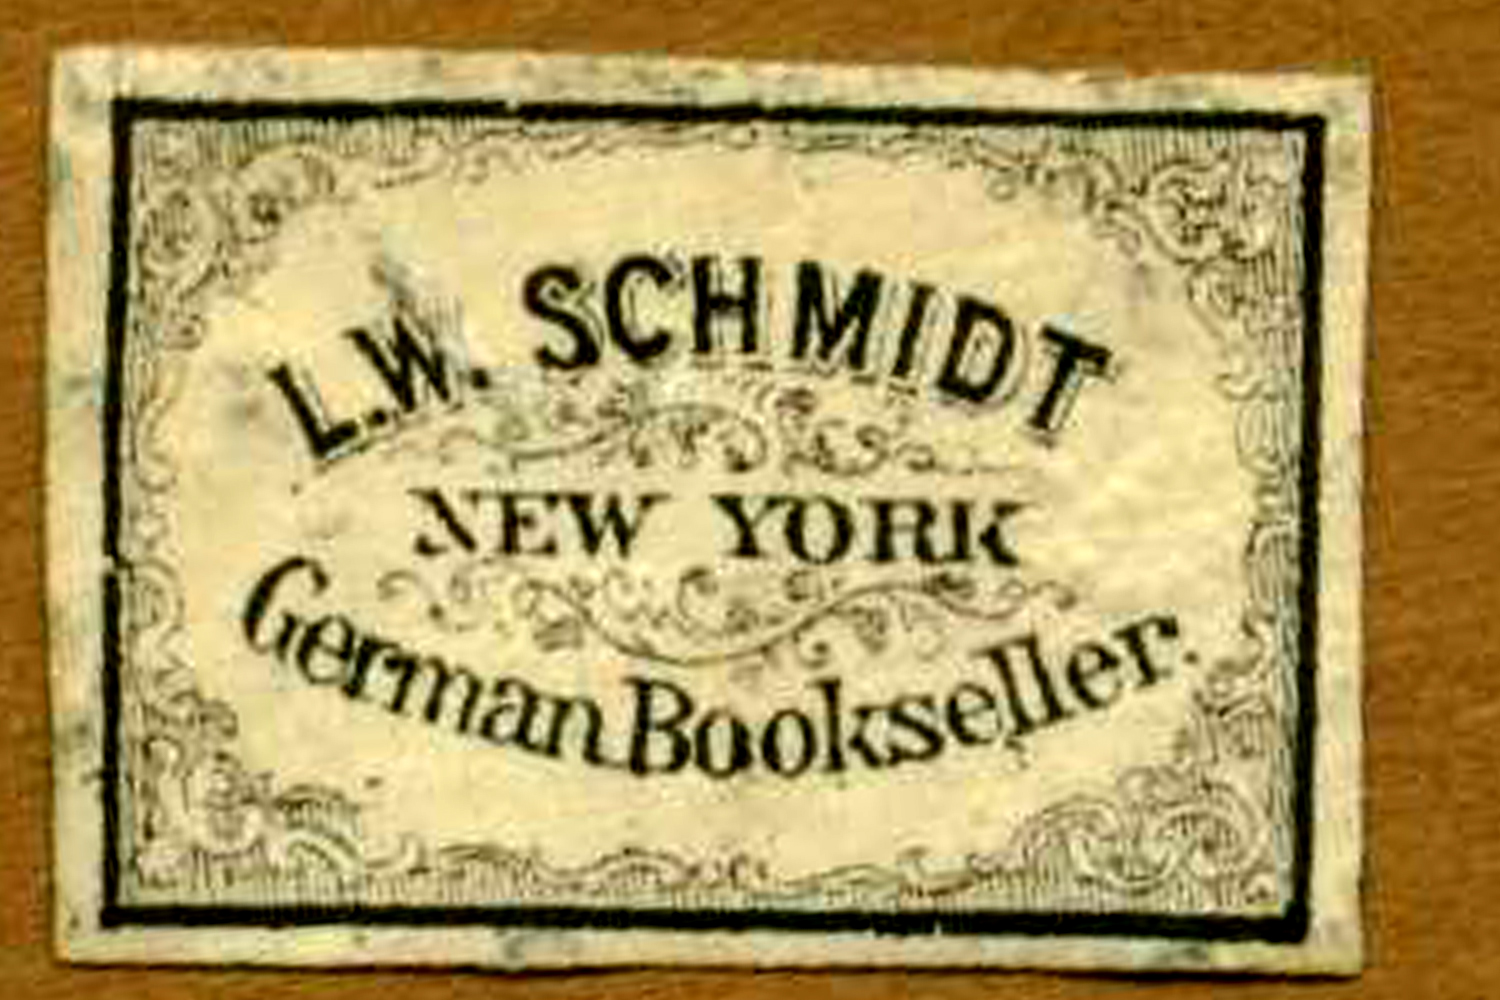 L W Schmidt New York German Bookseller